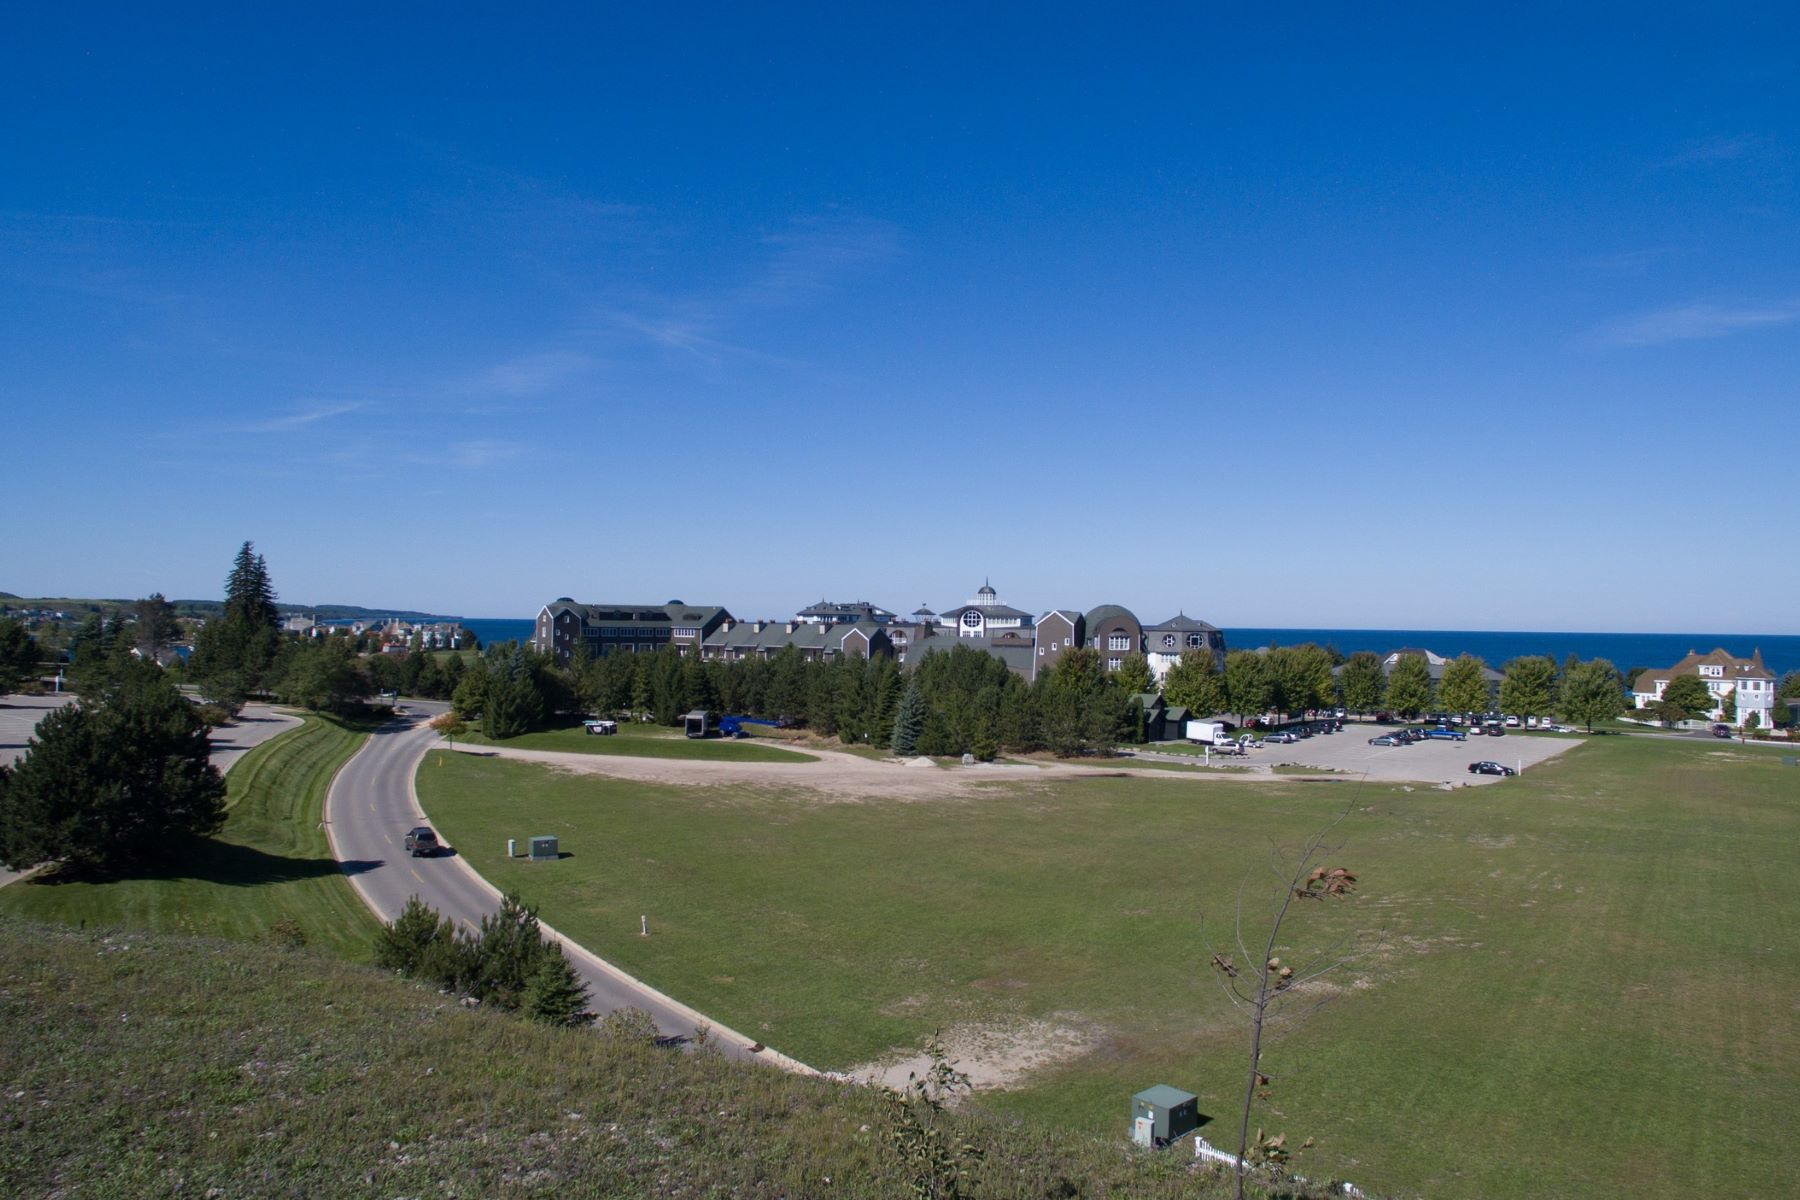 Land for Sale at Unit 3, The Ridge TBD Cliffs Drive, Unit 3, The Ridge Bay Harbor, Michigan, 49770 United States